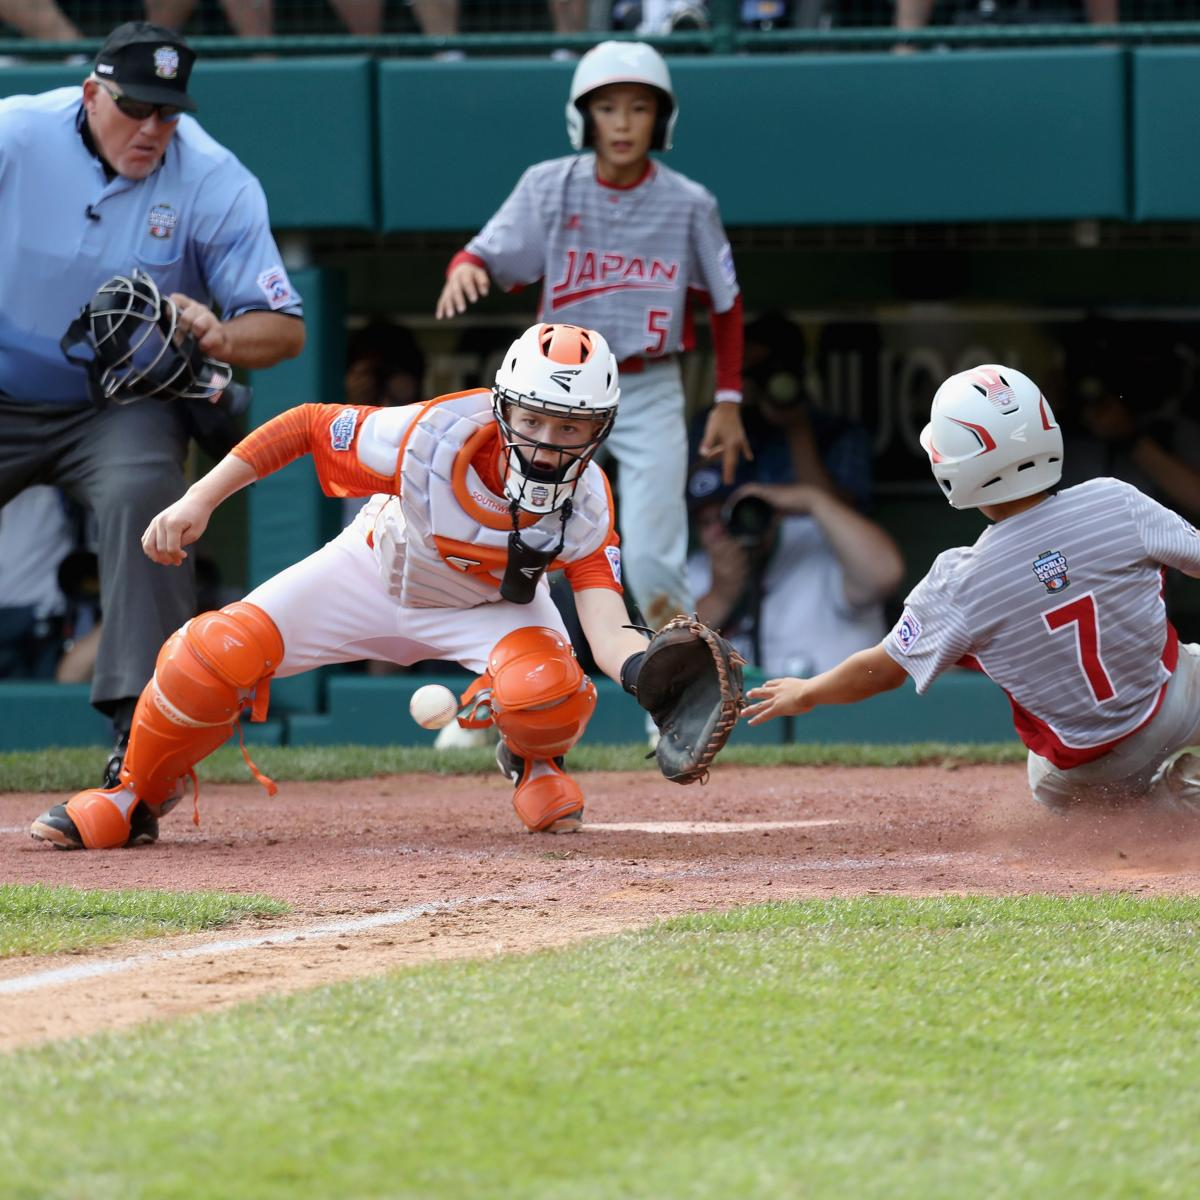 Little League World Series Regionals 2018: Wednesday Scores and Bracket Results